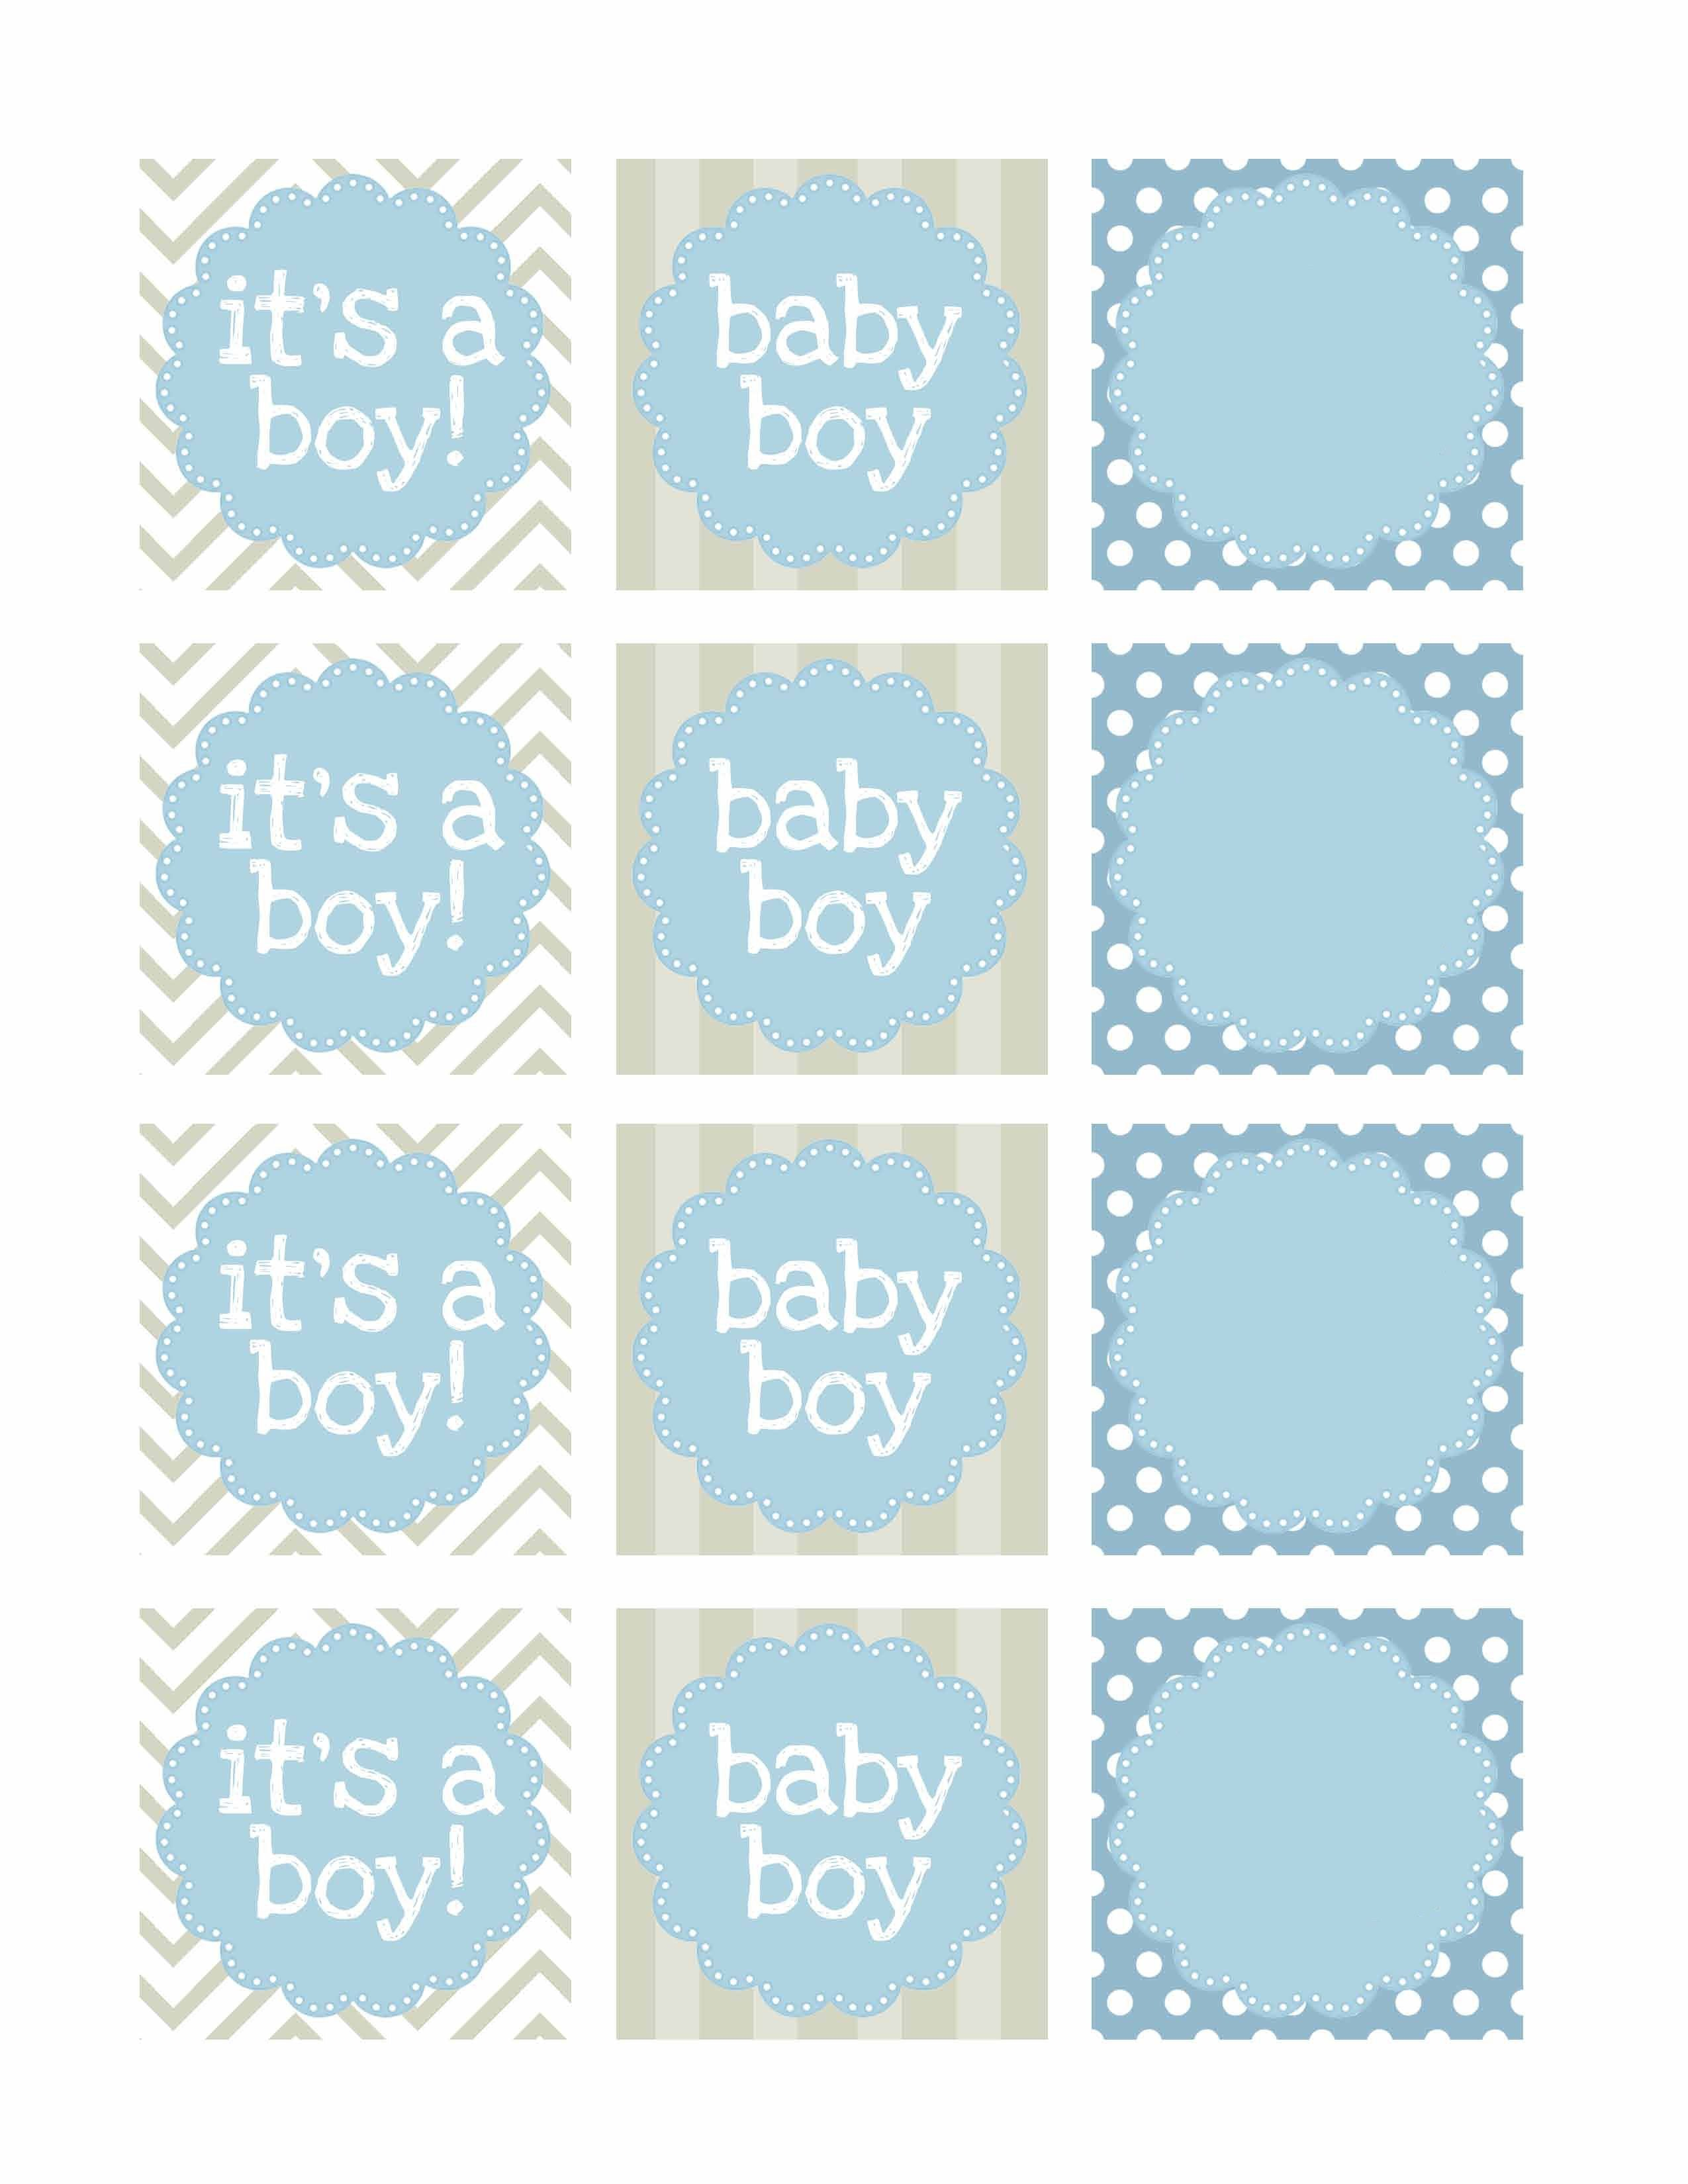 Boy Baby Shower Free Printables  Baby Shower  Baby Shower Labels Inside Baby Shower Label Template For Favors